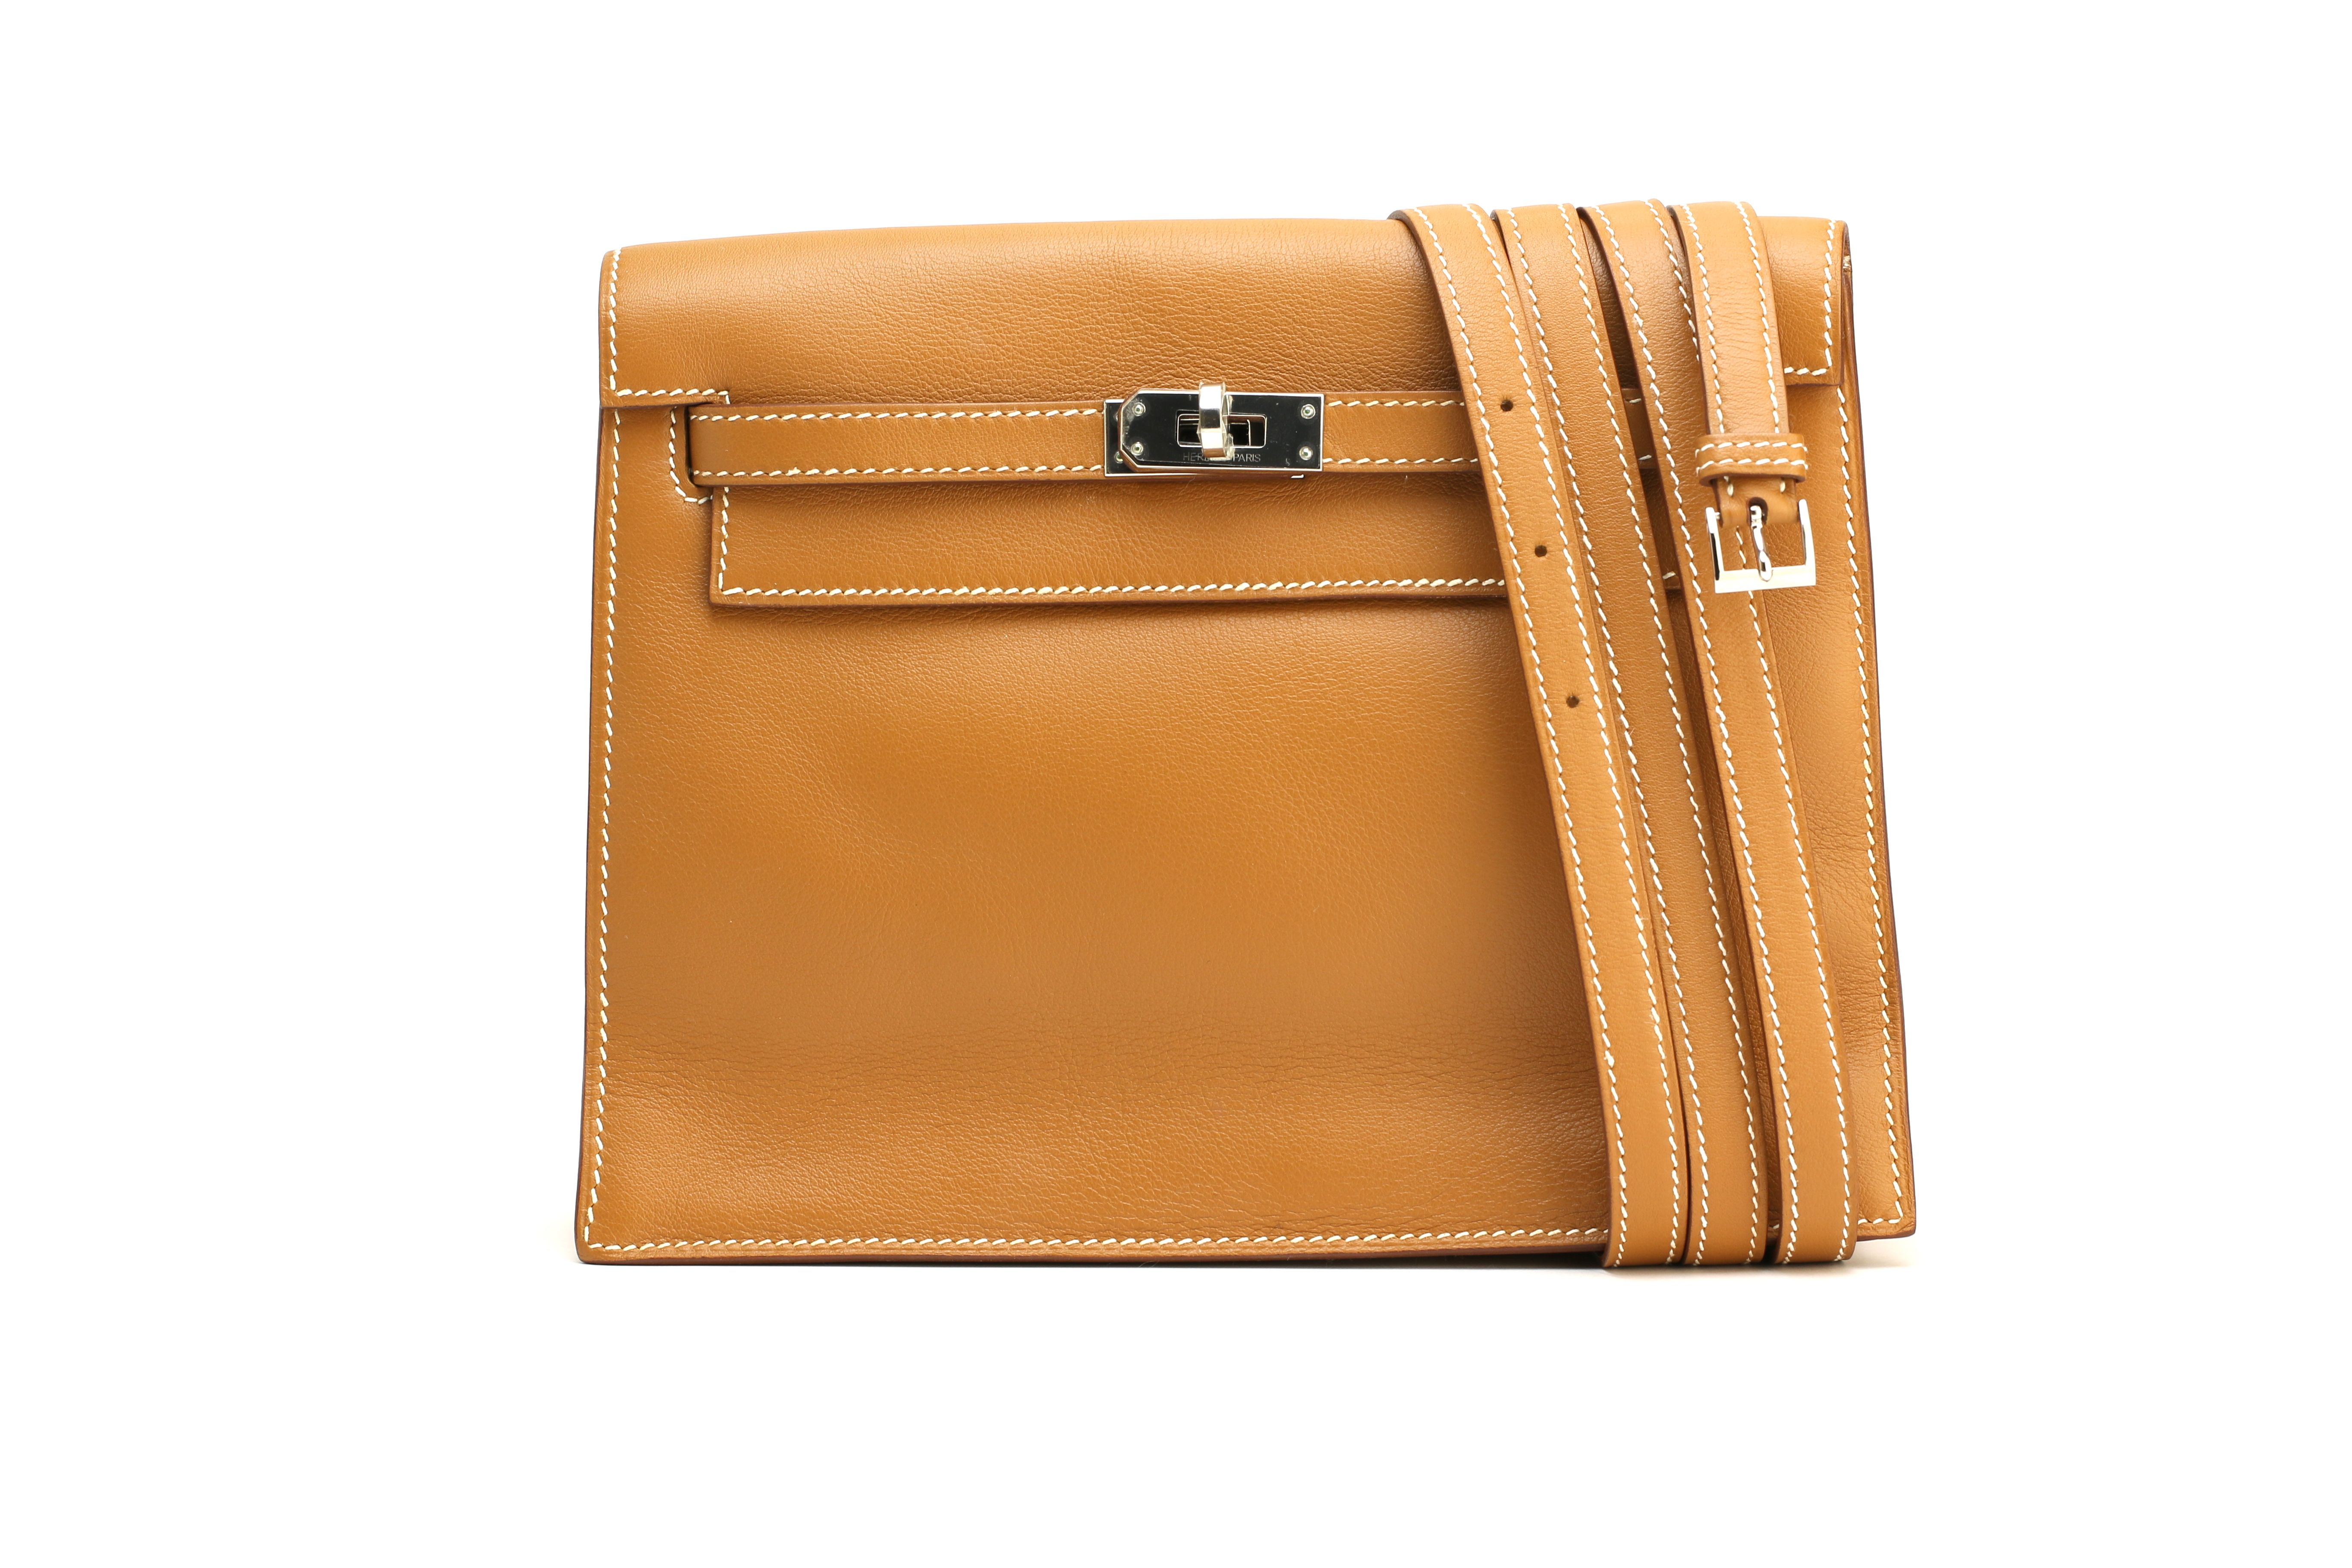 bf013d9780c8  Hermes Hermes Kelly Danse in a stunning gold swift leather with palladium  hardware.